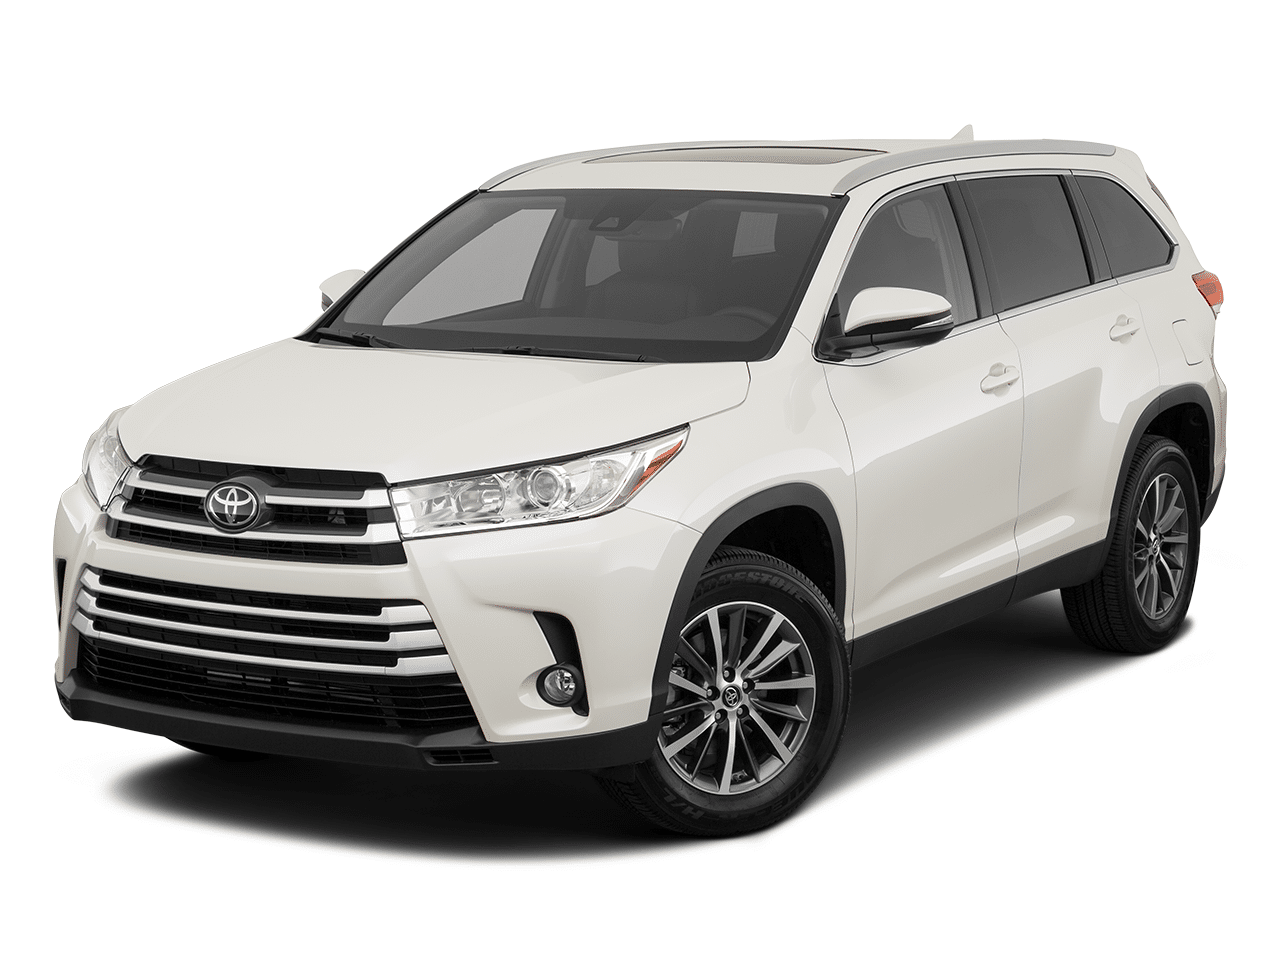 Midsize-SUV-Rental-Vancouver-Car-Rental-Toyota-Highlander